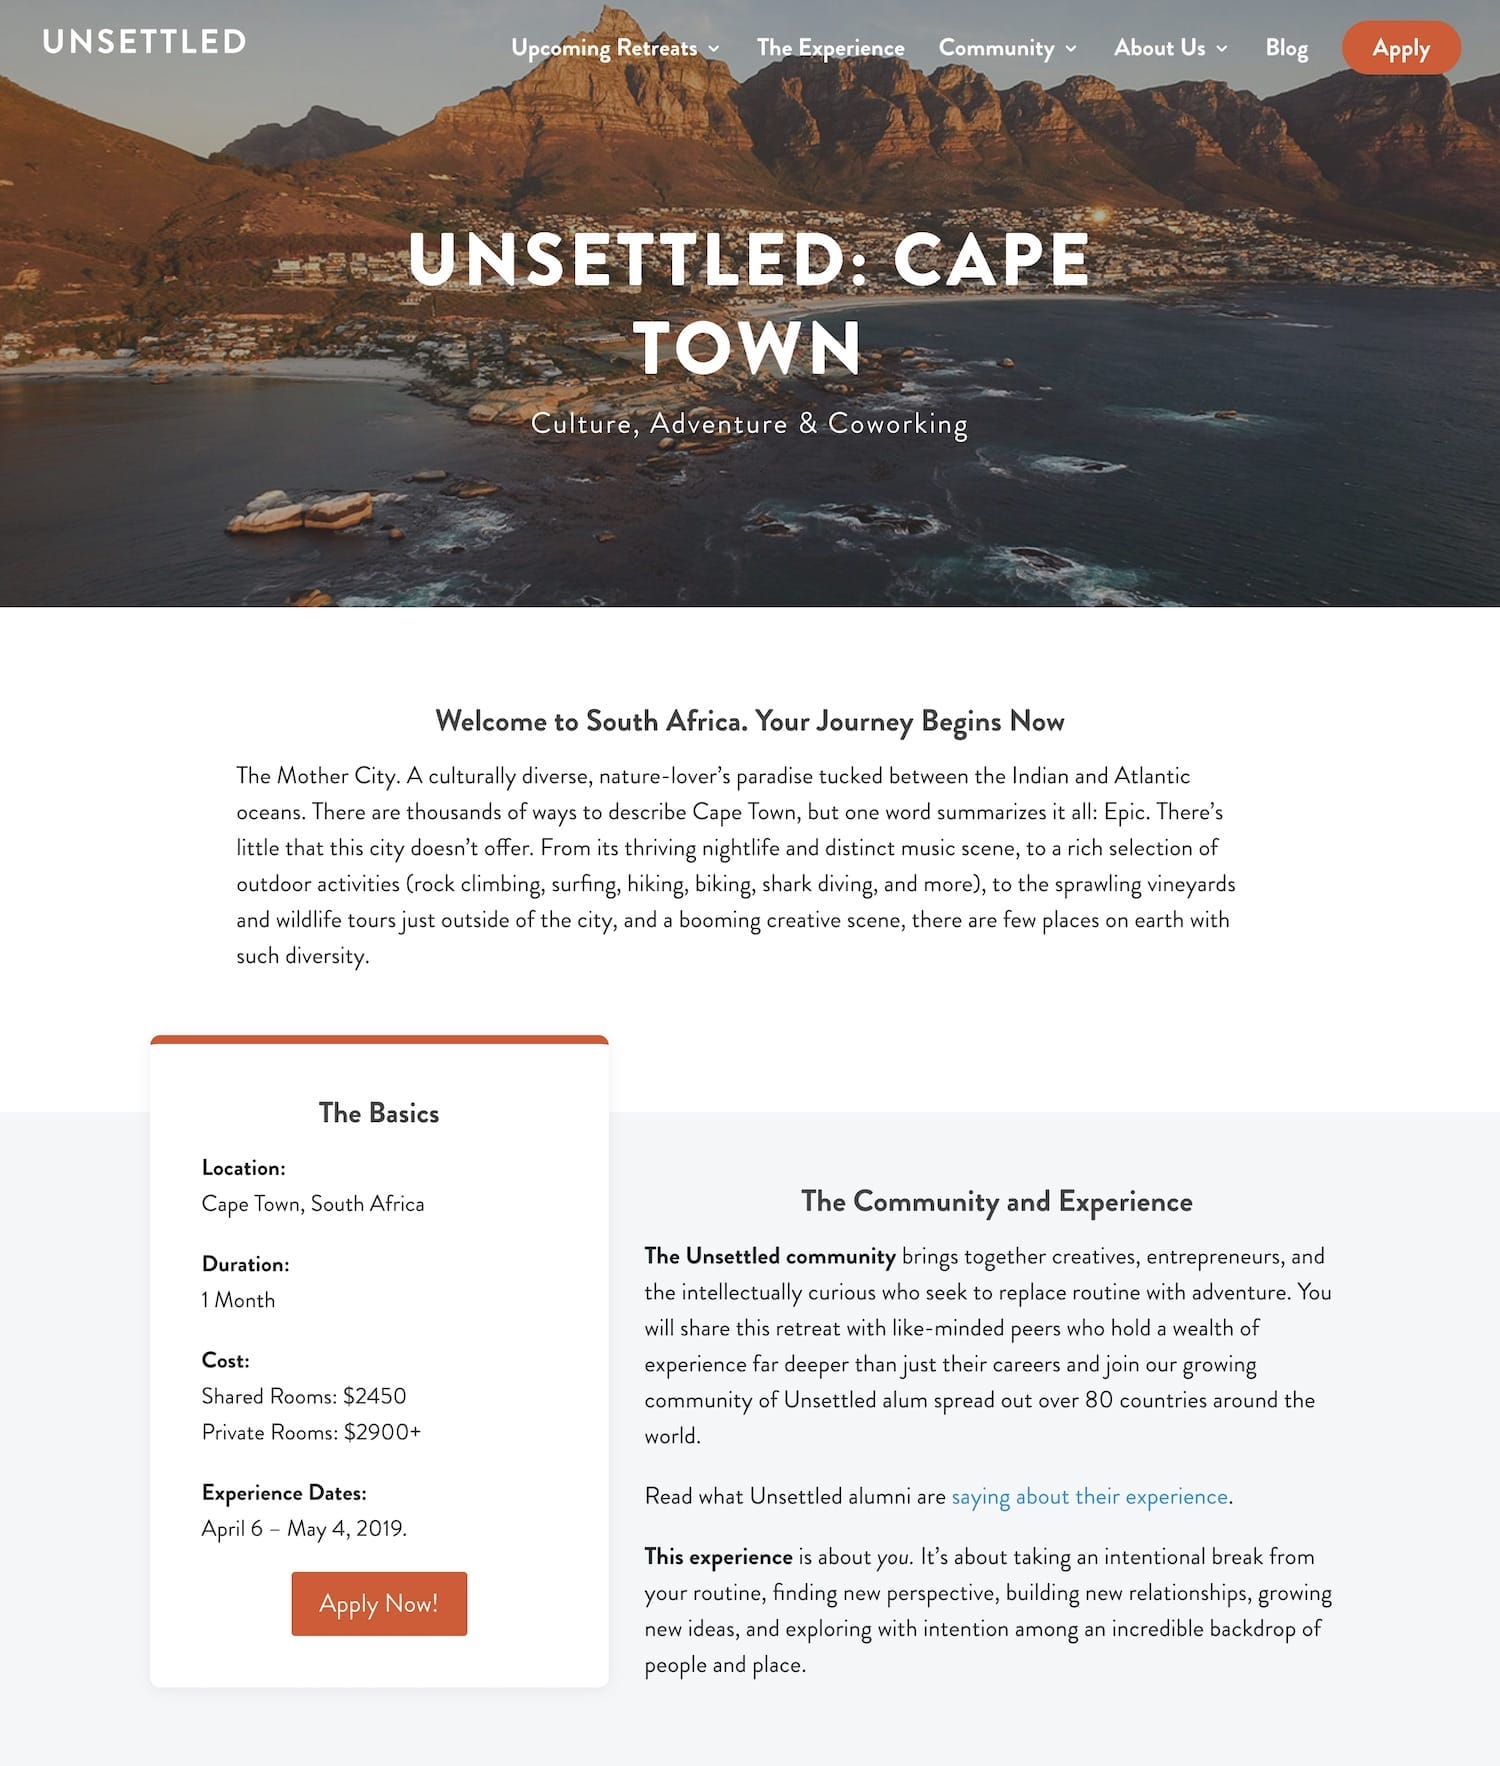 Unsettled Web Migration and Re-Design